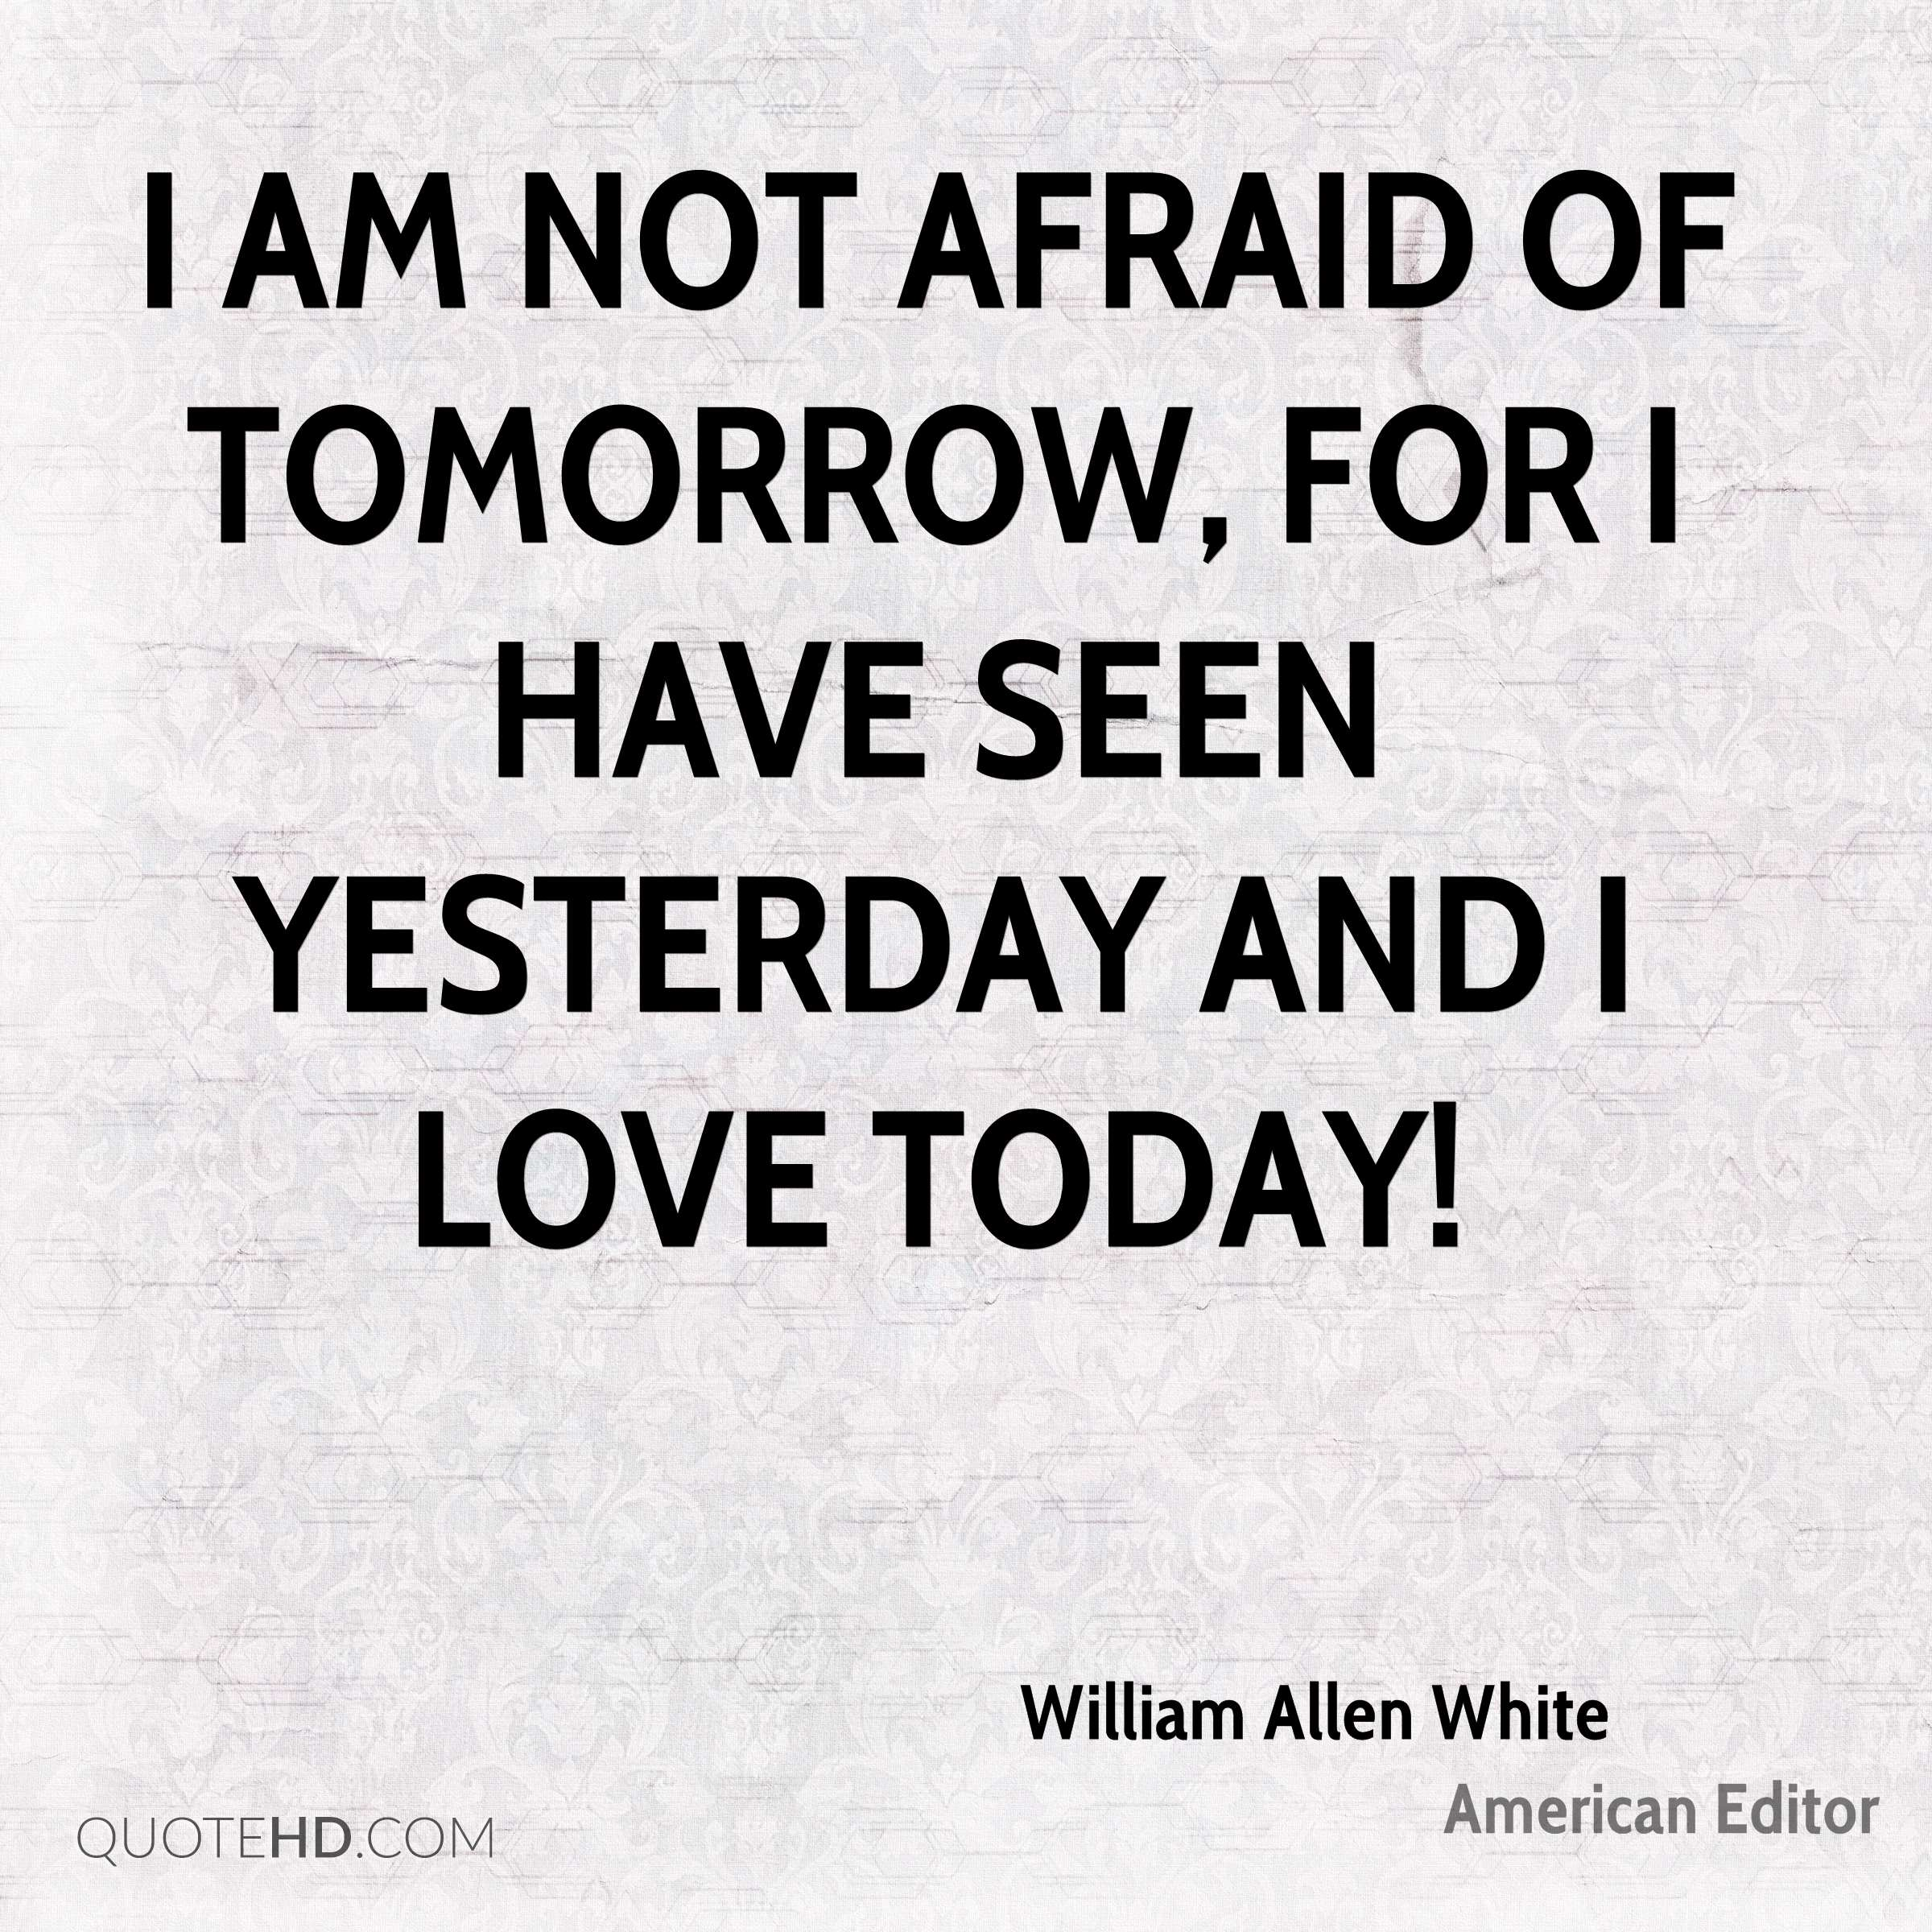 Photo Editor With Love Quotes William Allen White Quotes  Quotehd